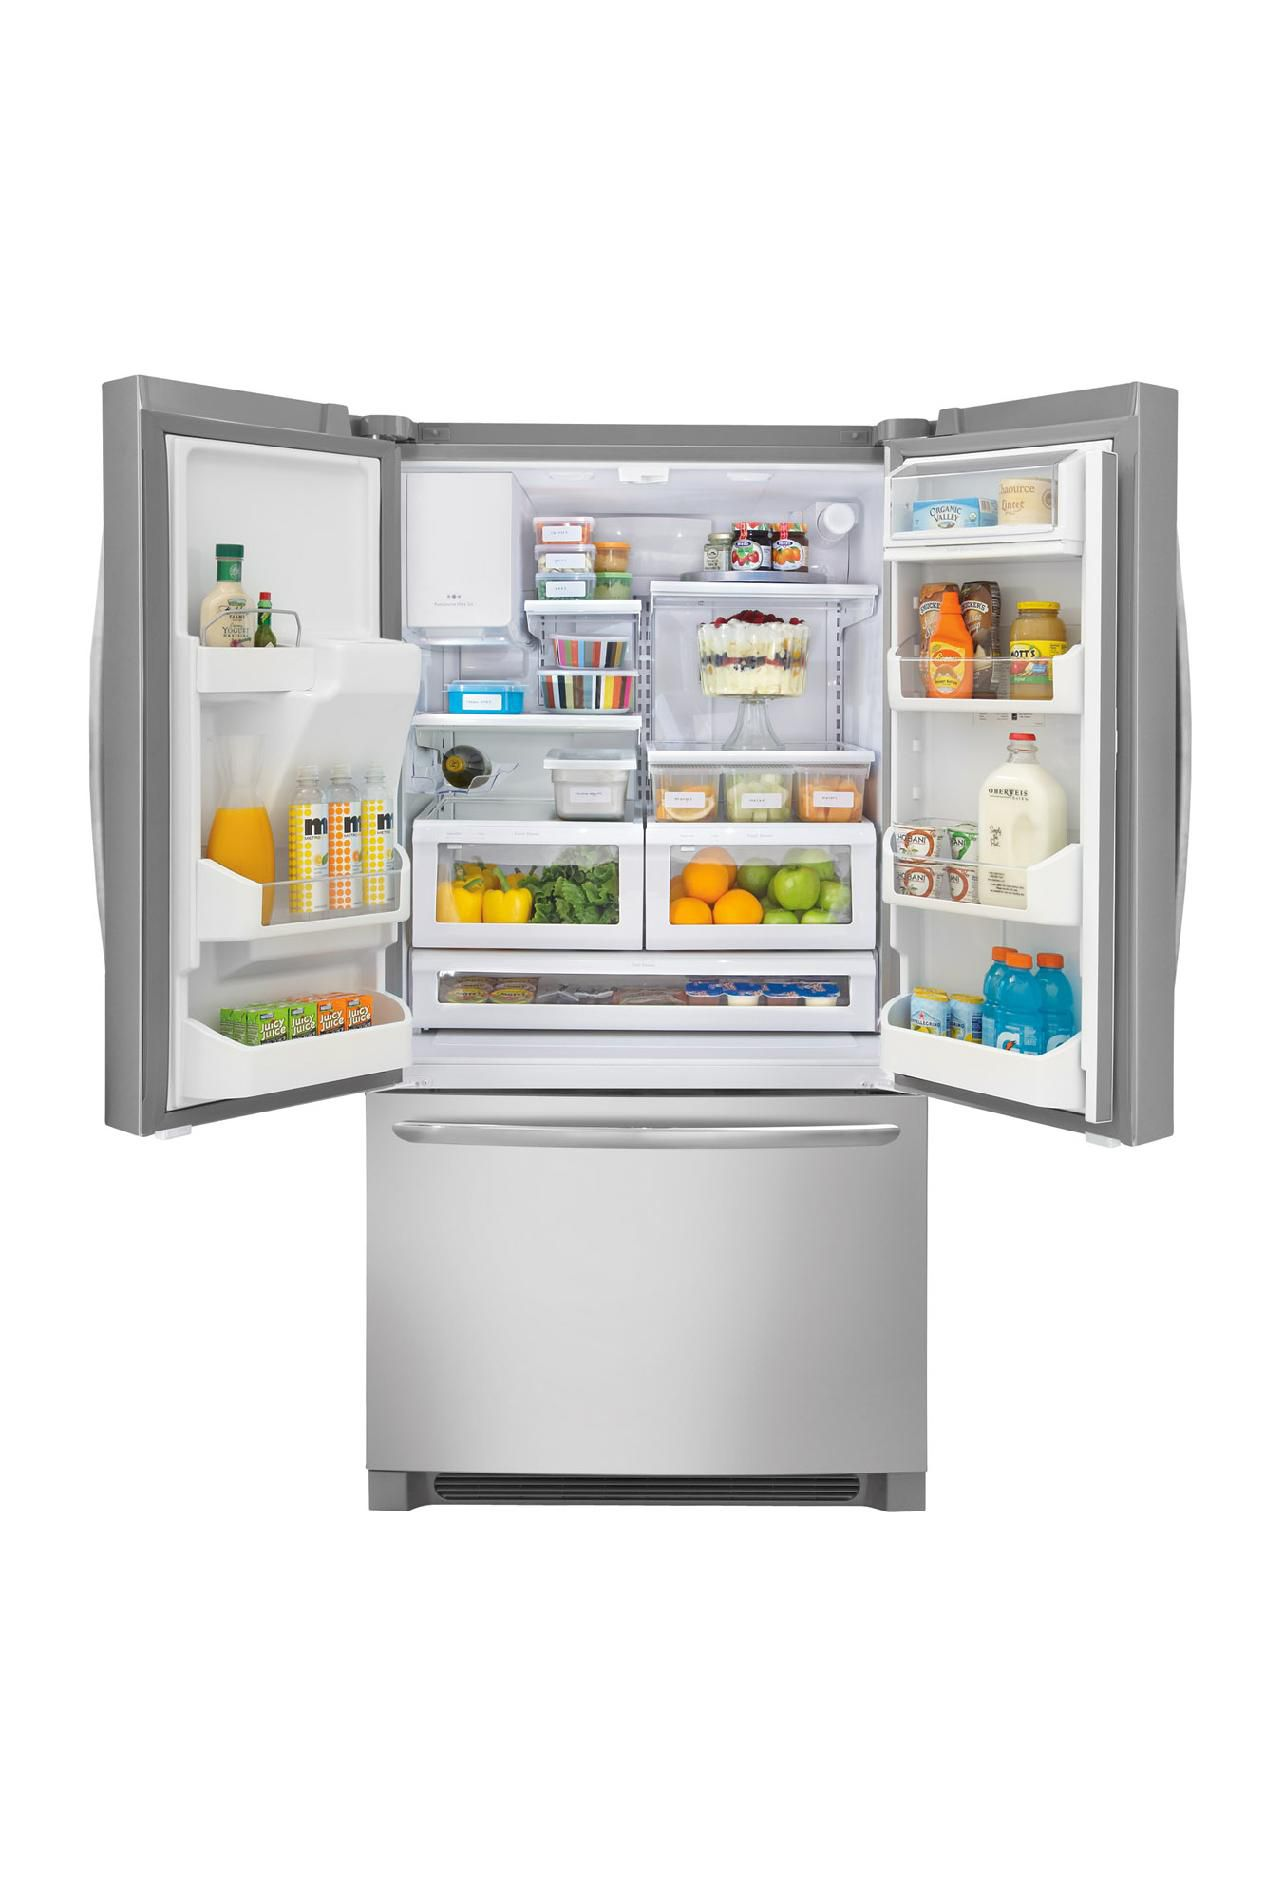 22.6 cu. ft. French-Door Counter-Depth Refrigerator - Stainless Steel                                                            at mygofer.com